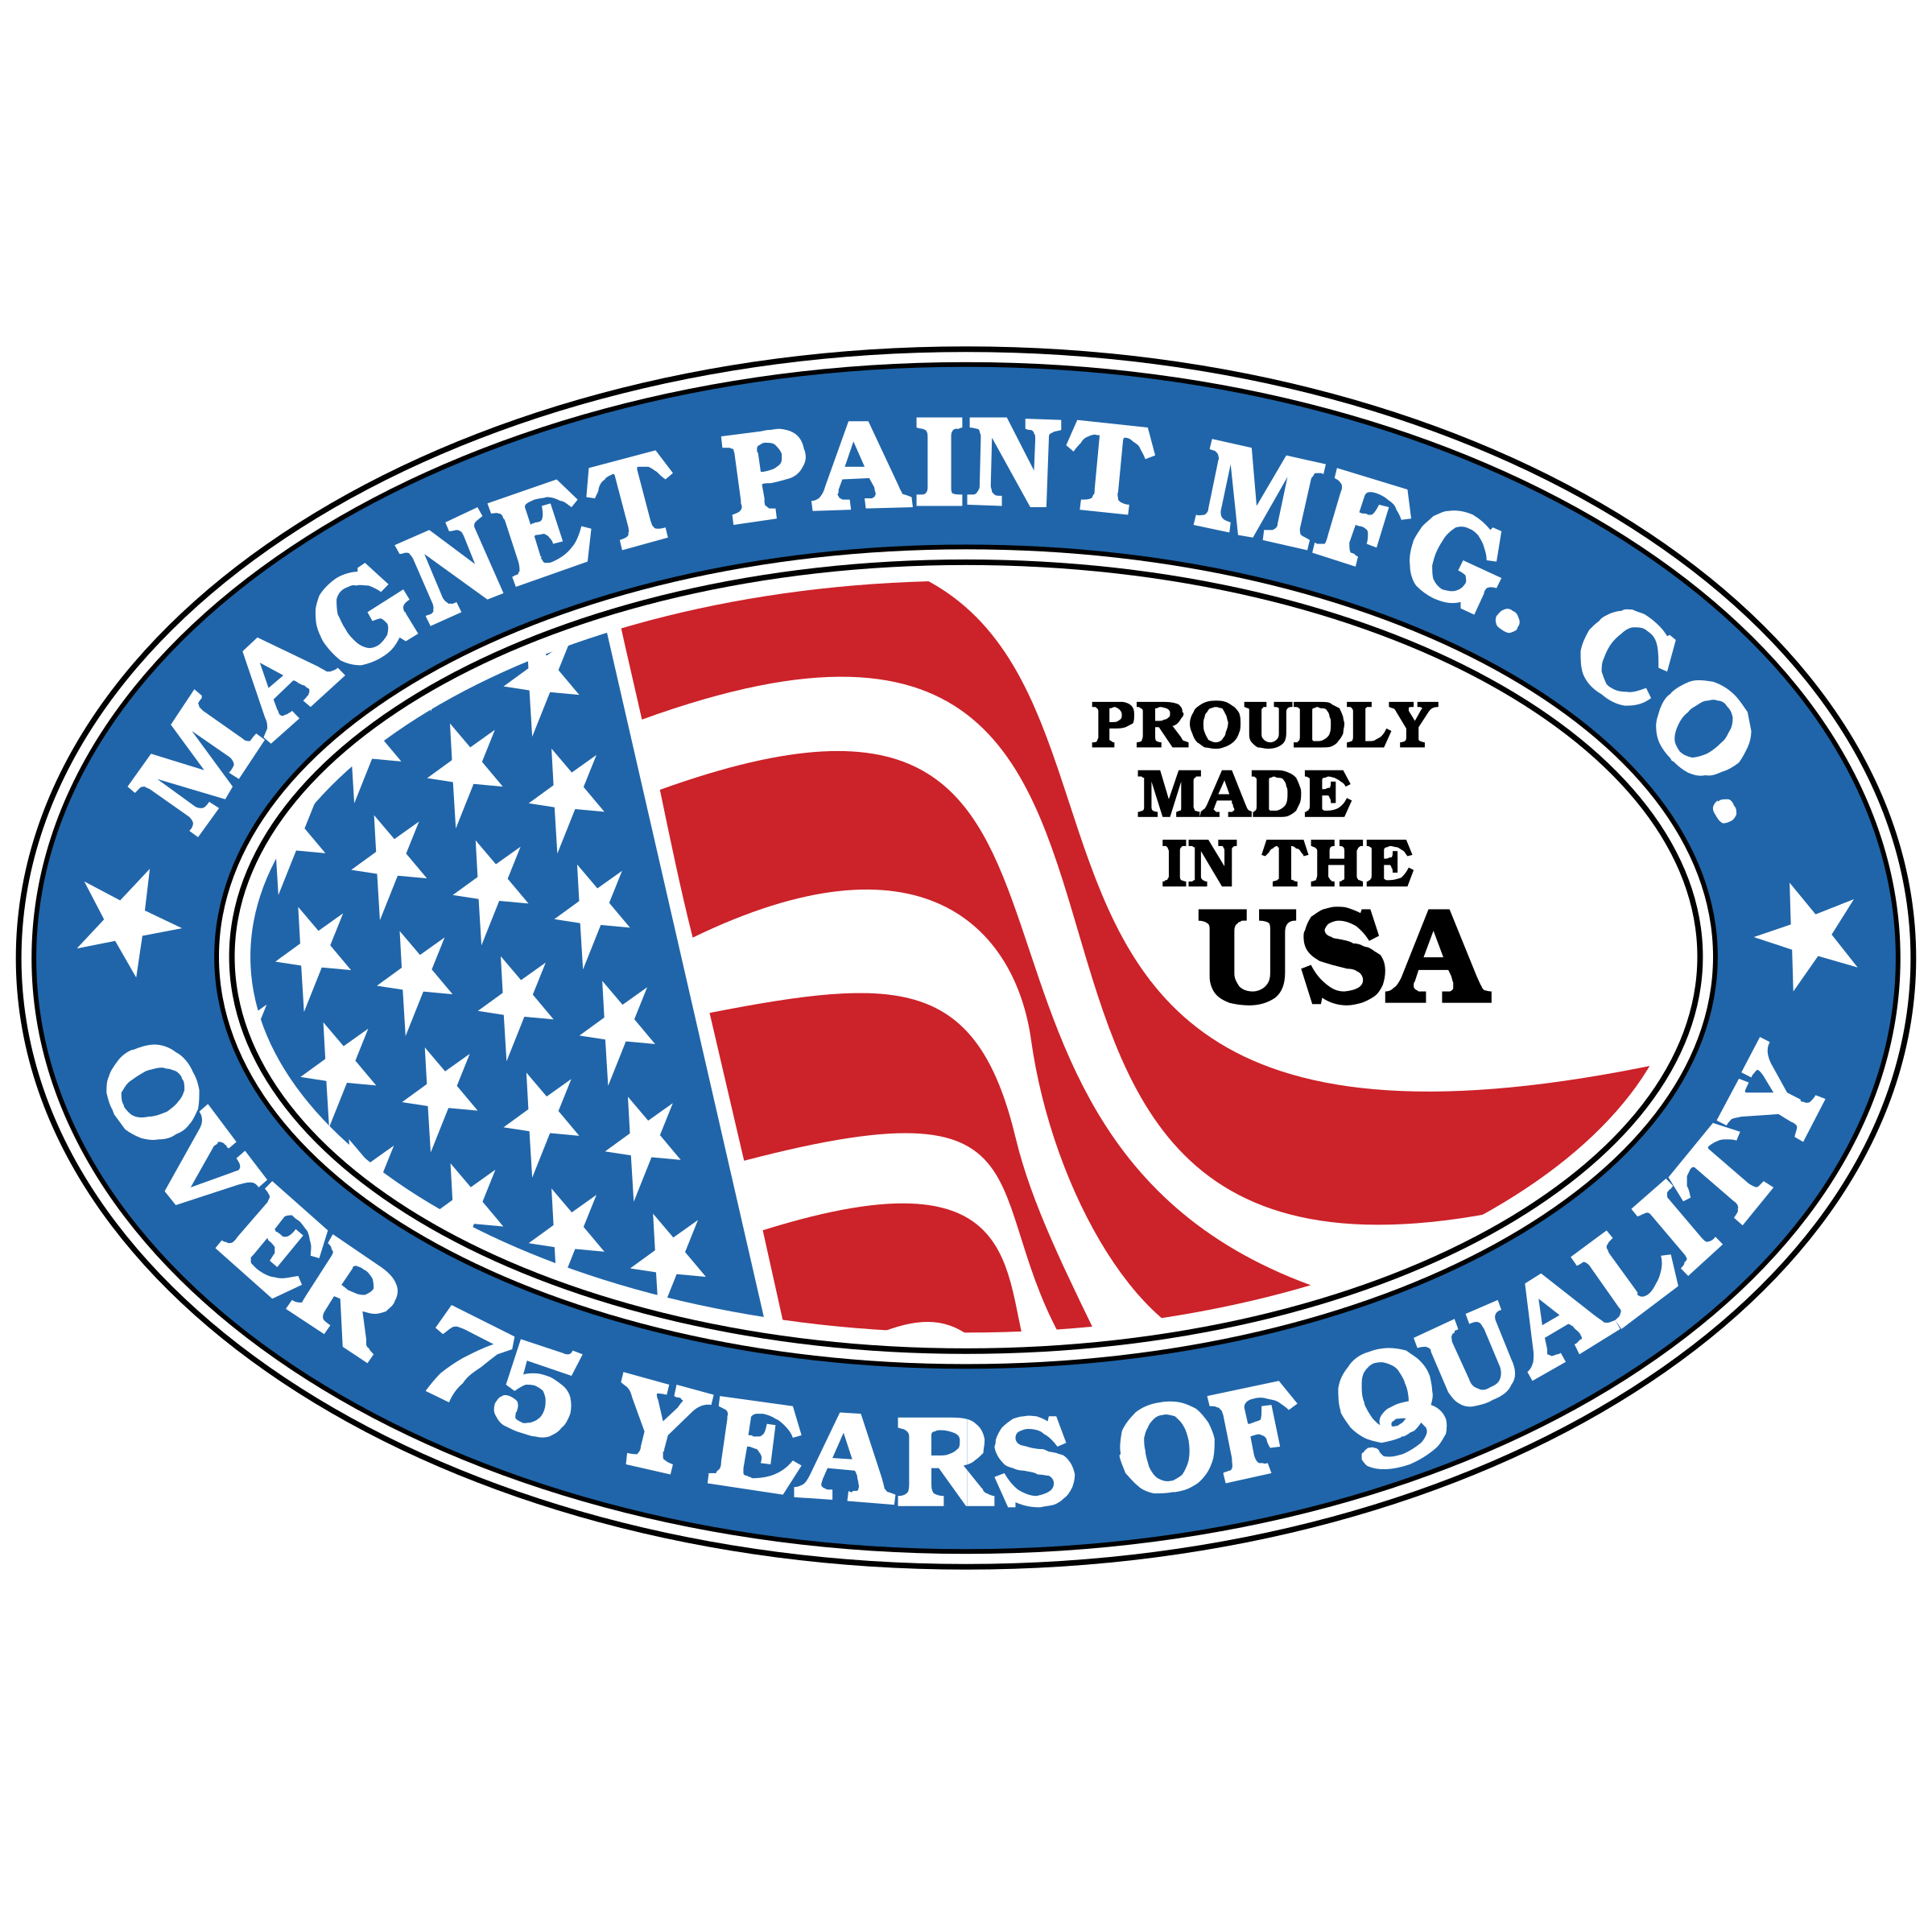 Vector magnet red blue. Paint mfg logo png